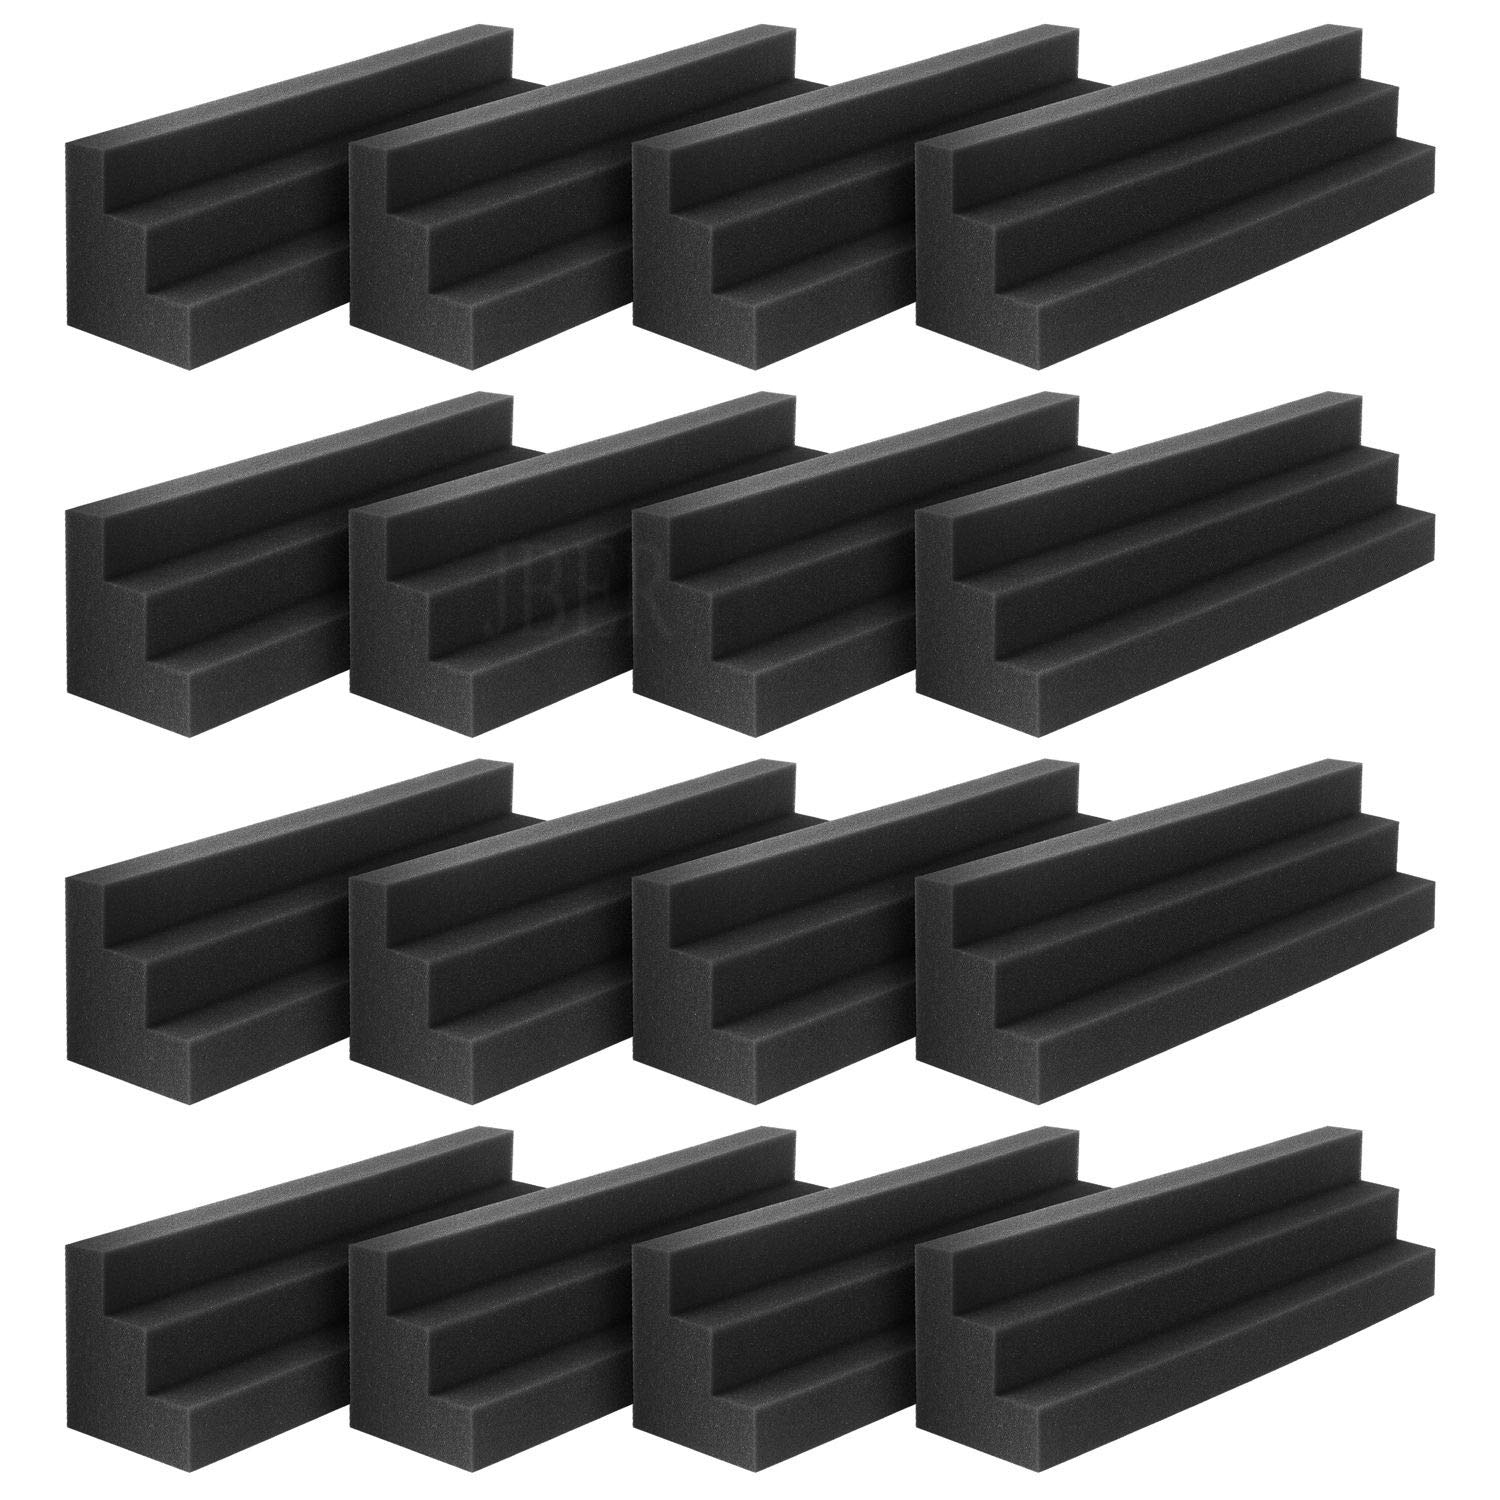 JBER Column Acoustic Wedge Studio Foam Corner Block Finish Corner Wall in Studios or Home Theater (16 Pack)